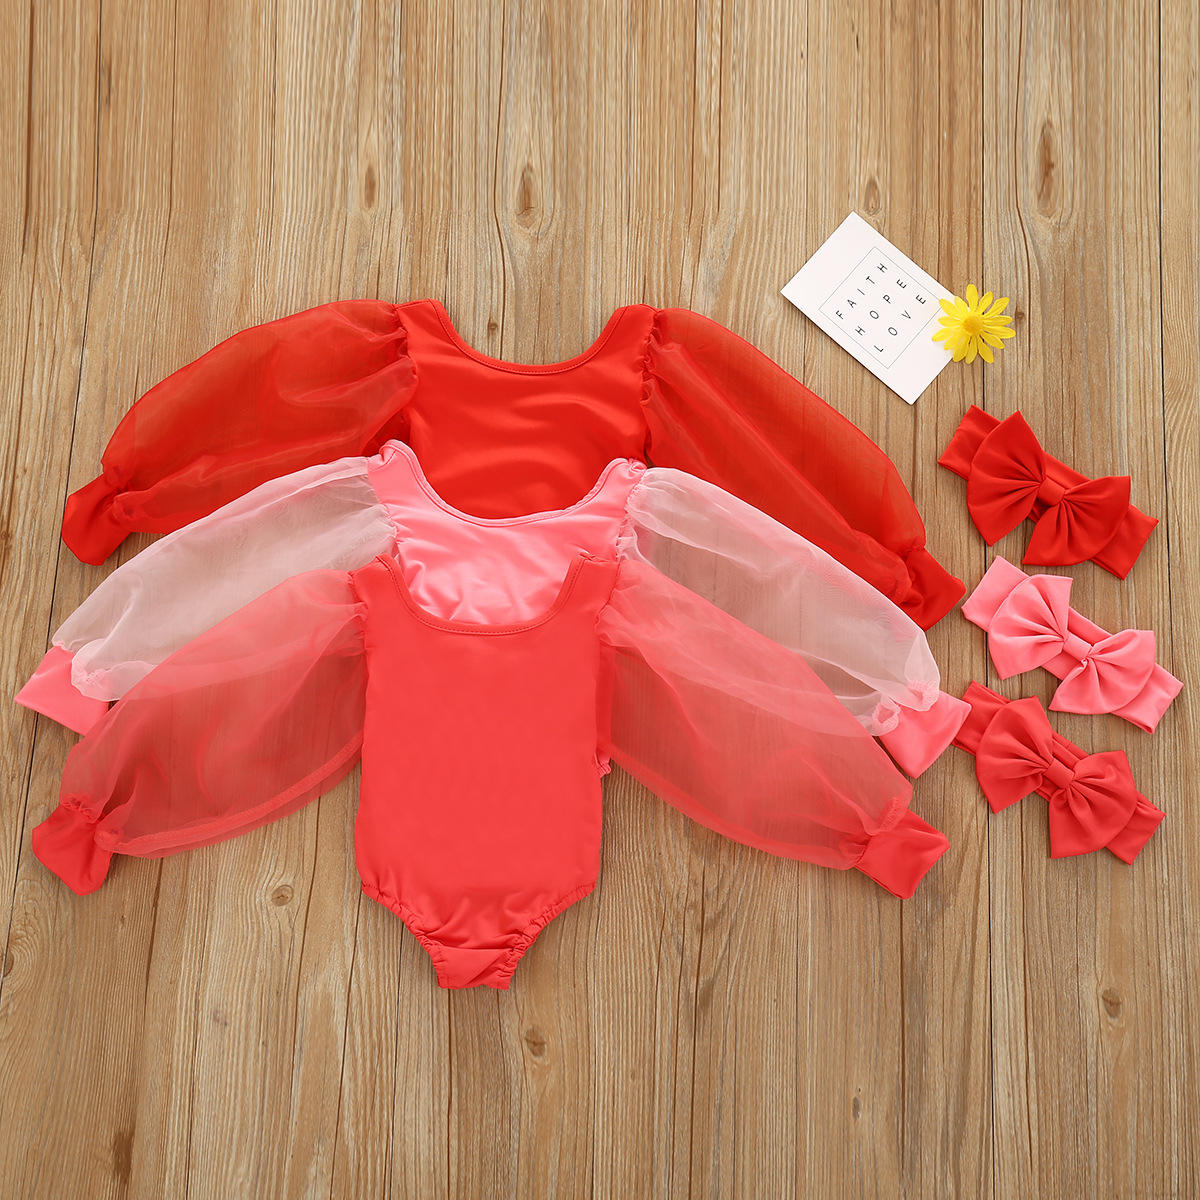 Valentine White Red Pink Scoop Low Back Leotards Newborn Kids Baby Girl Mesh Puff Long Sleeve Romper Bodysuit With Bow Headband